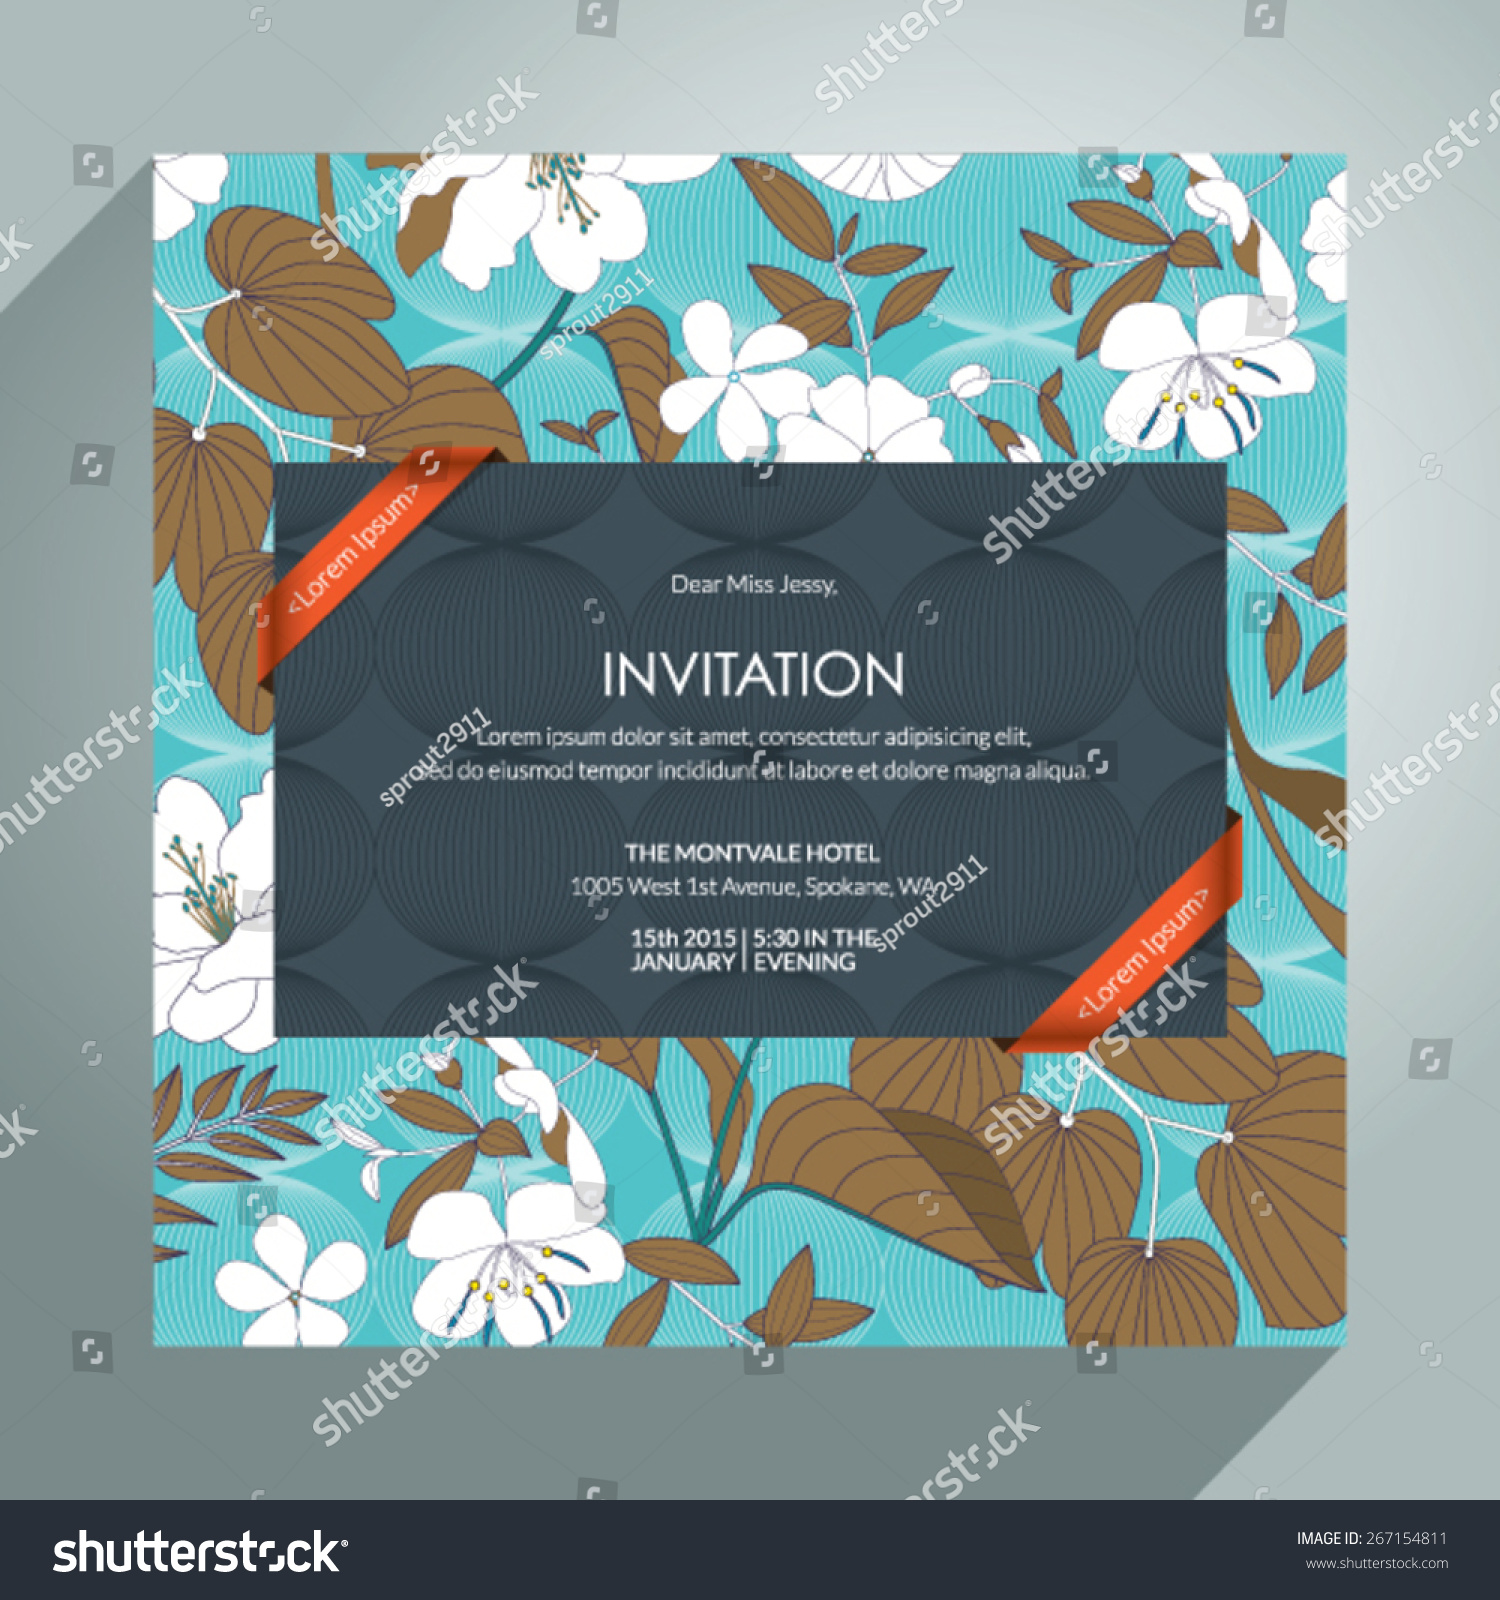 Beautiful vector invitation card eps 10 stock vector 267154811 beautiful vector invitation card eps 10 stopboris Image collections